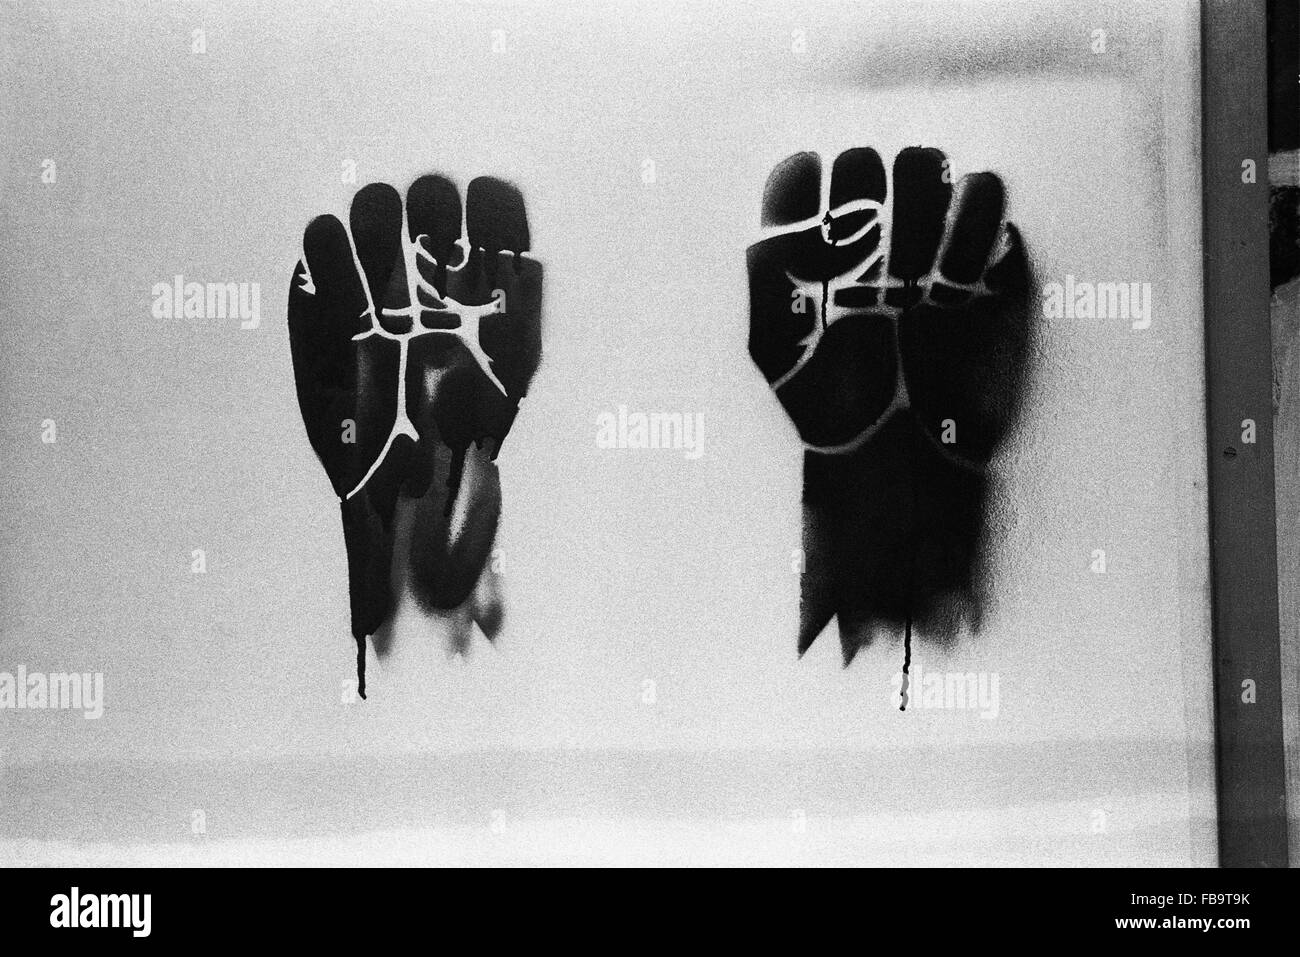 1968 events. -    -  1968 events. -  2 fists: A symbol of the protest movement in 1968.   -  Philippe Gras / Le - Stock Image